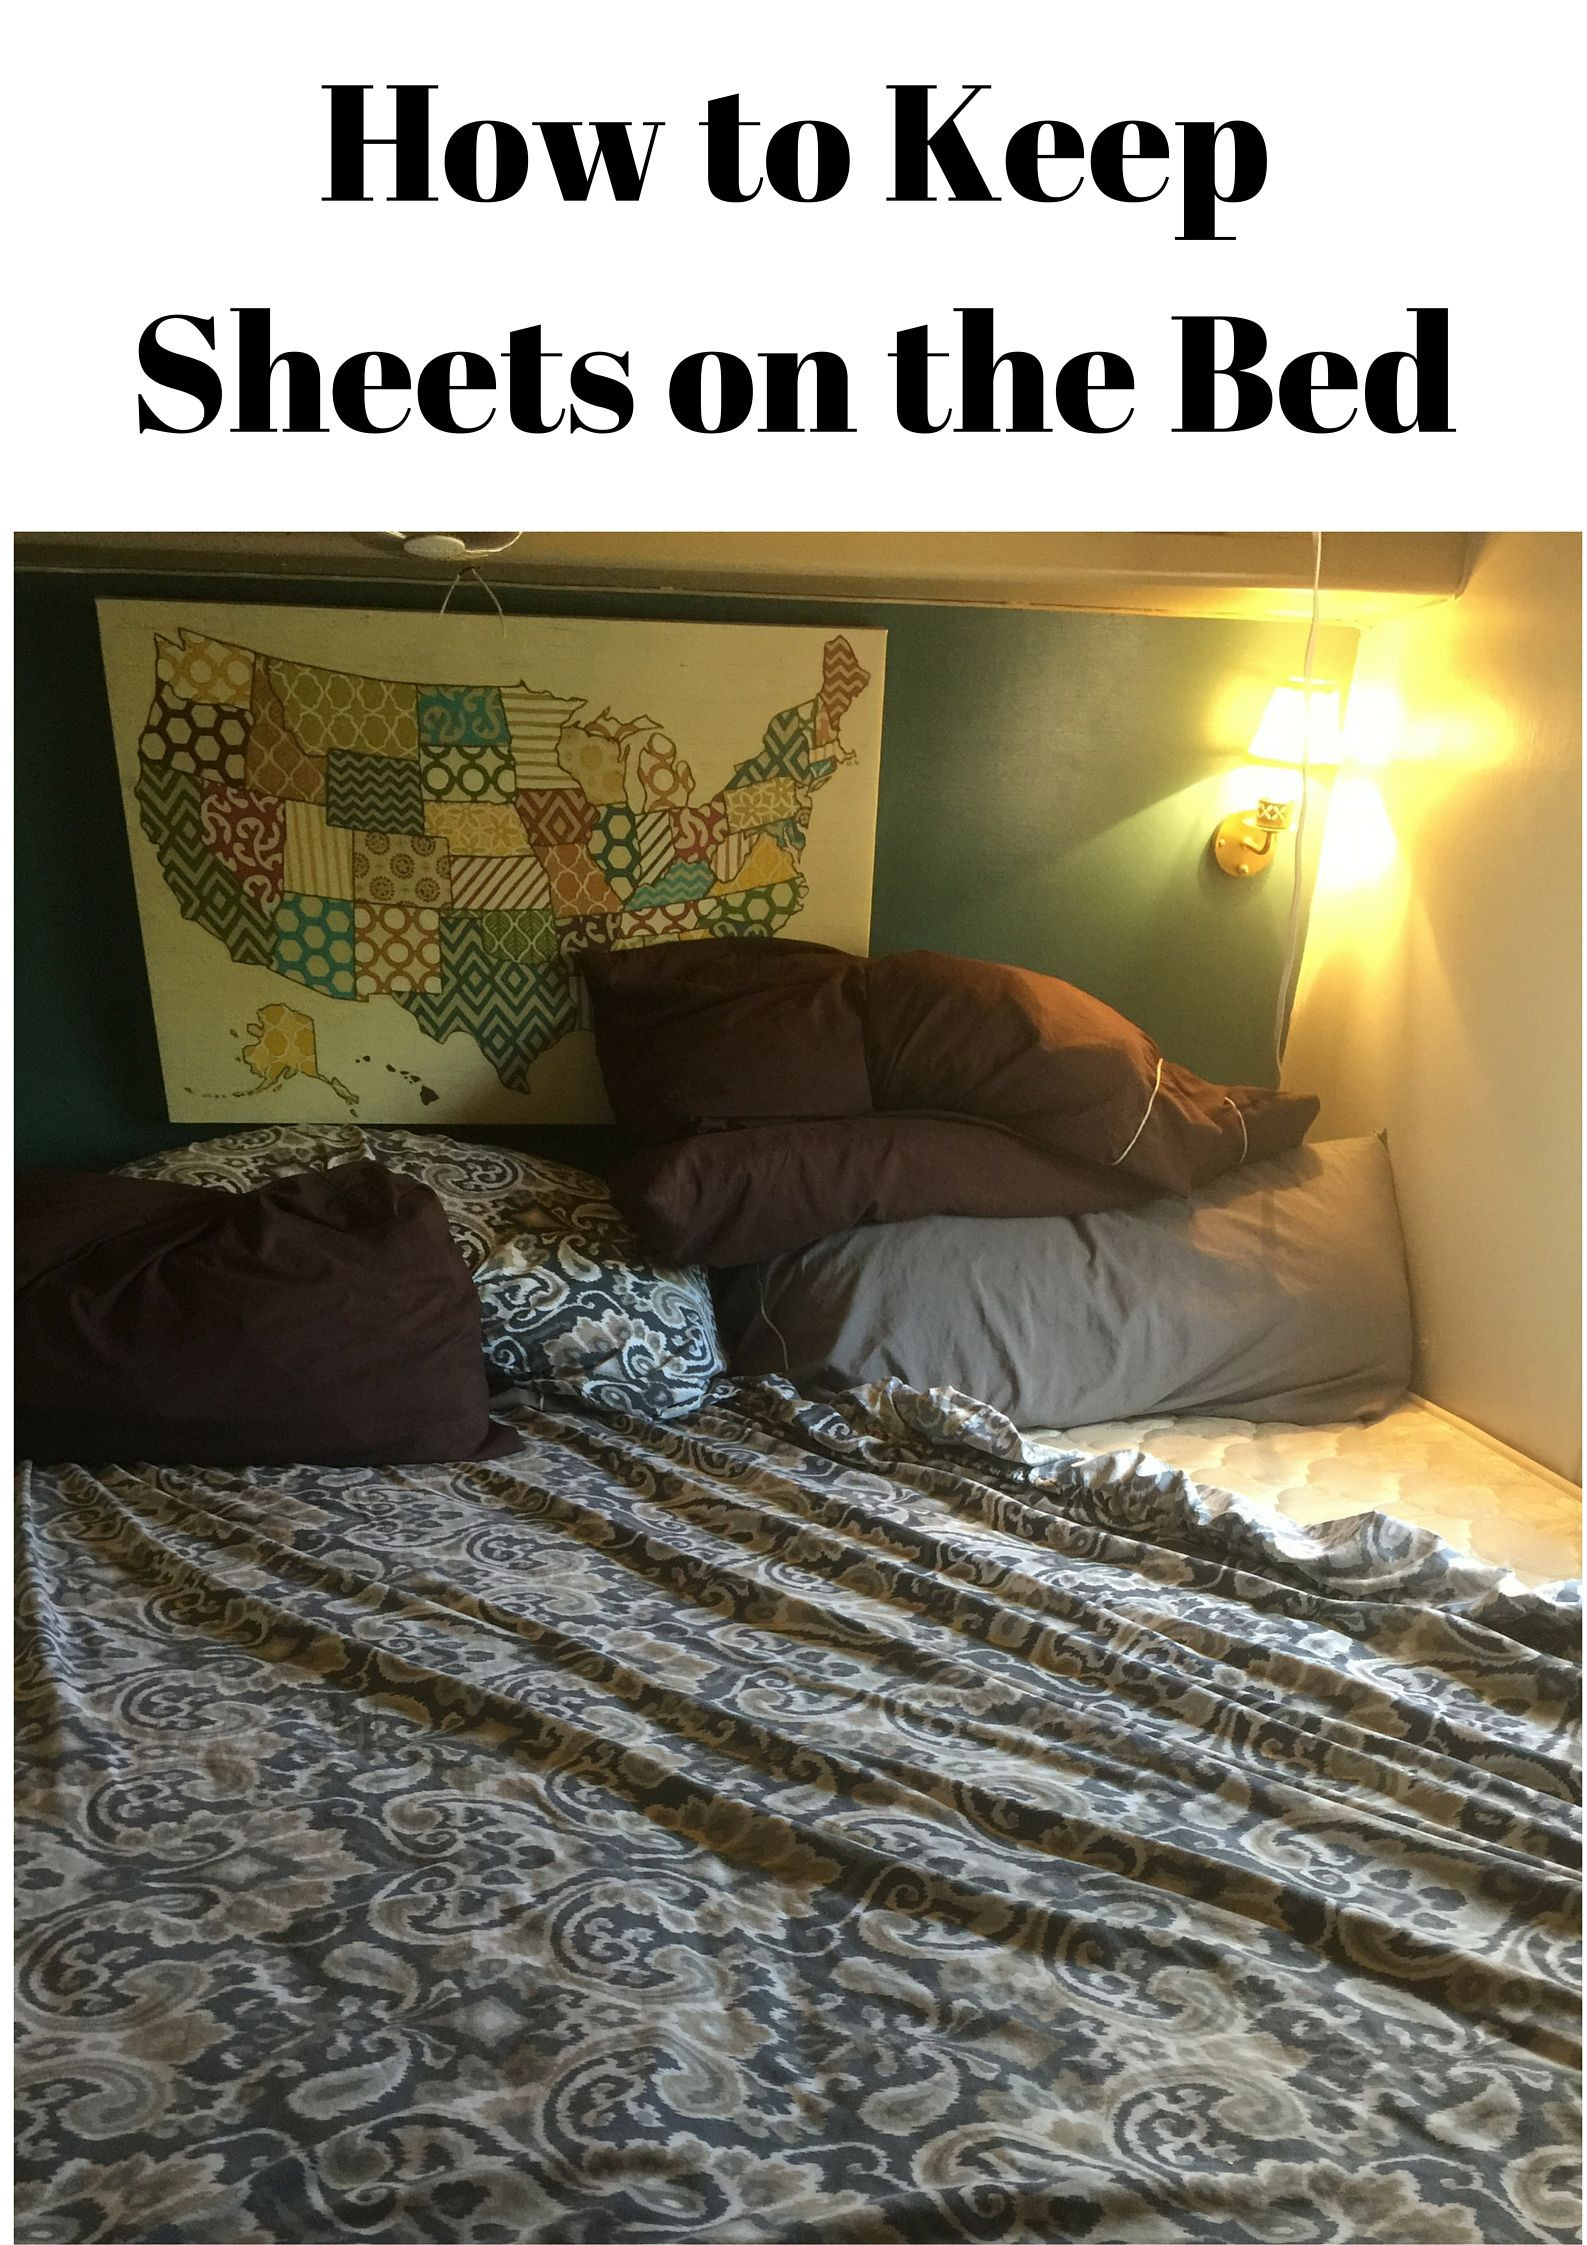 Best ideas about How To Keep Sheets On Bed DIY . Save or Pin How to Keep Sheets on the Bed Trailer Now.